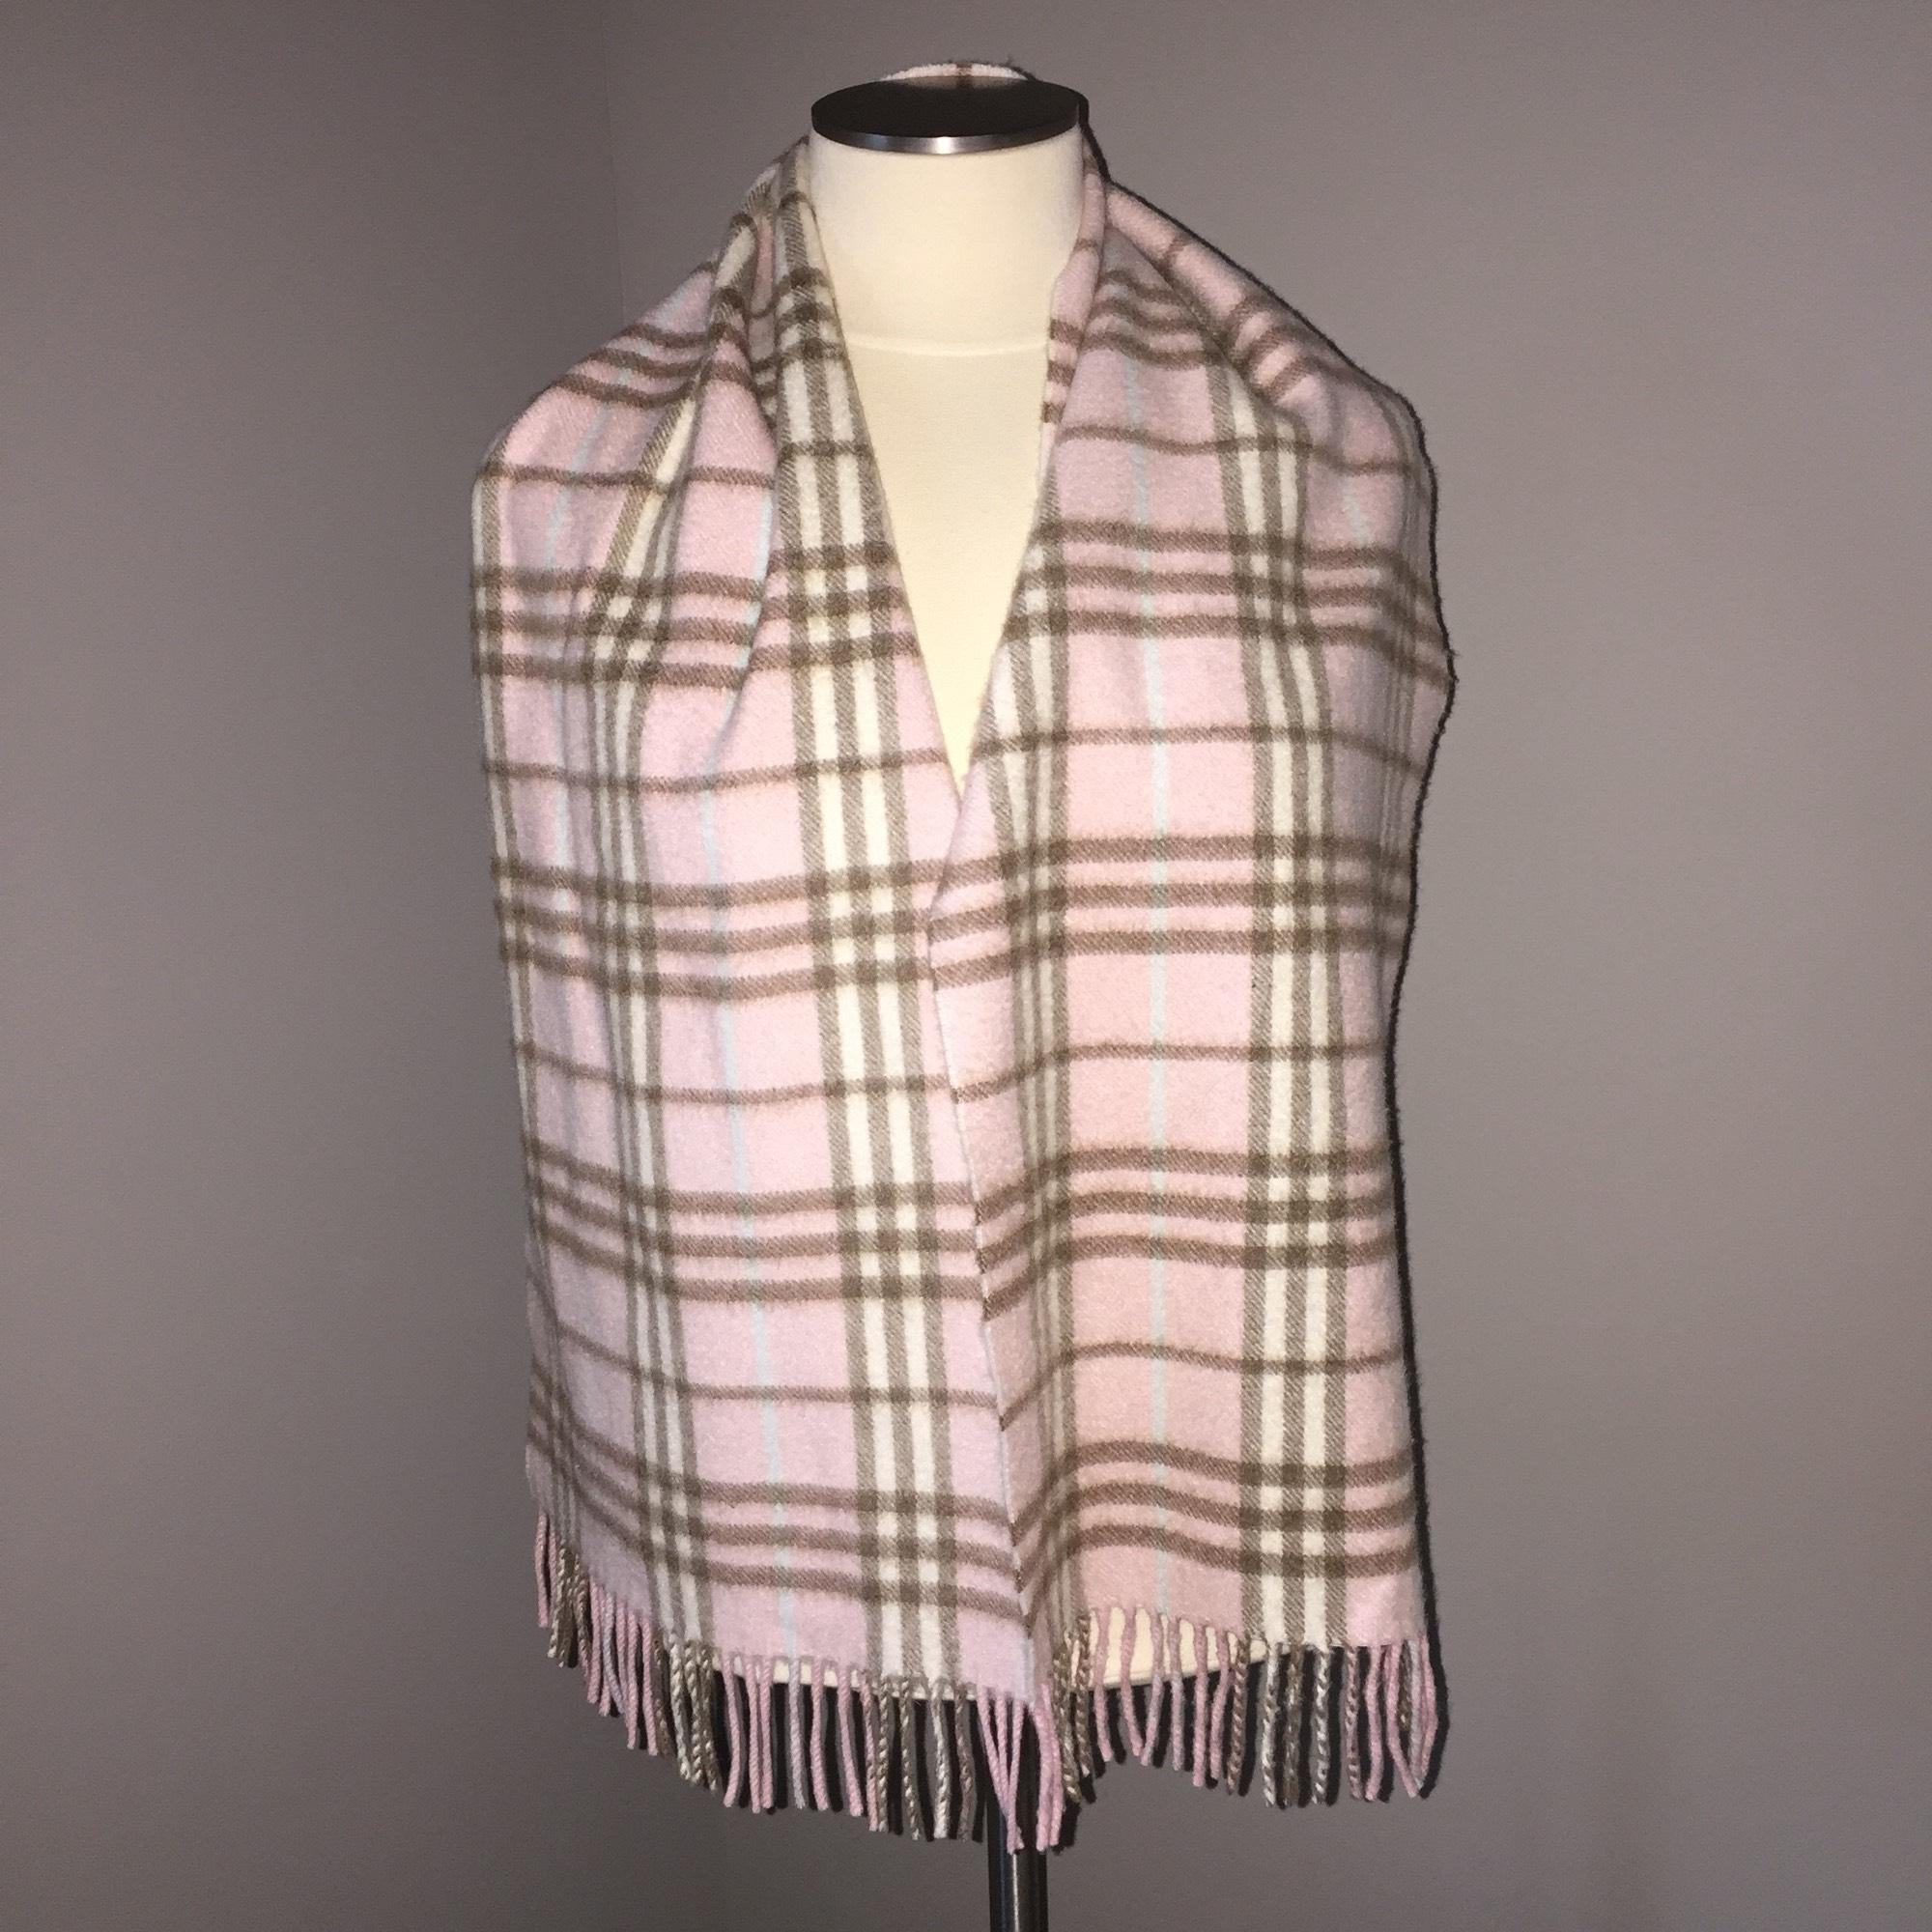 8a58150ea8ff Ink 3c927 France Pink Burberry 064b1 Scarf Check Cashmere nORXCgvq